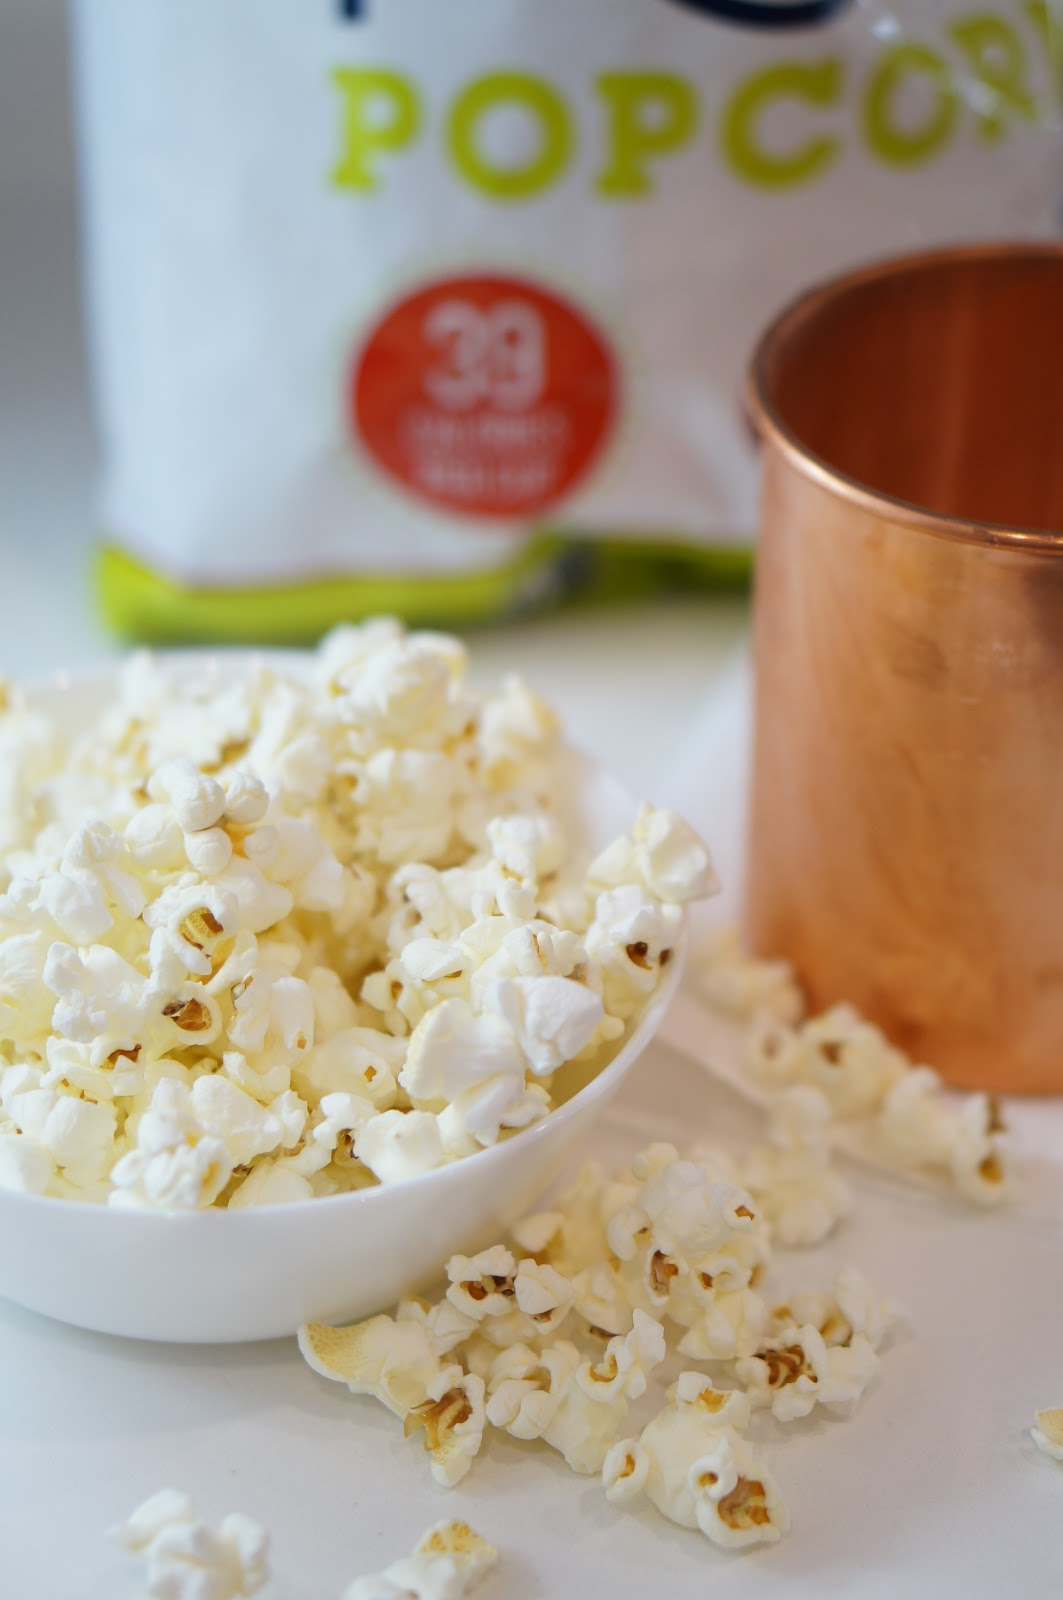 SNACKS | MOSCOW MULE COCKTAIL & SKINNYPOP POPCORN by North Carolina lifestyle blogger Rebecca Lately